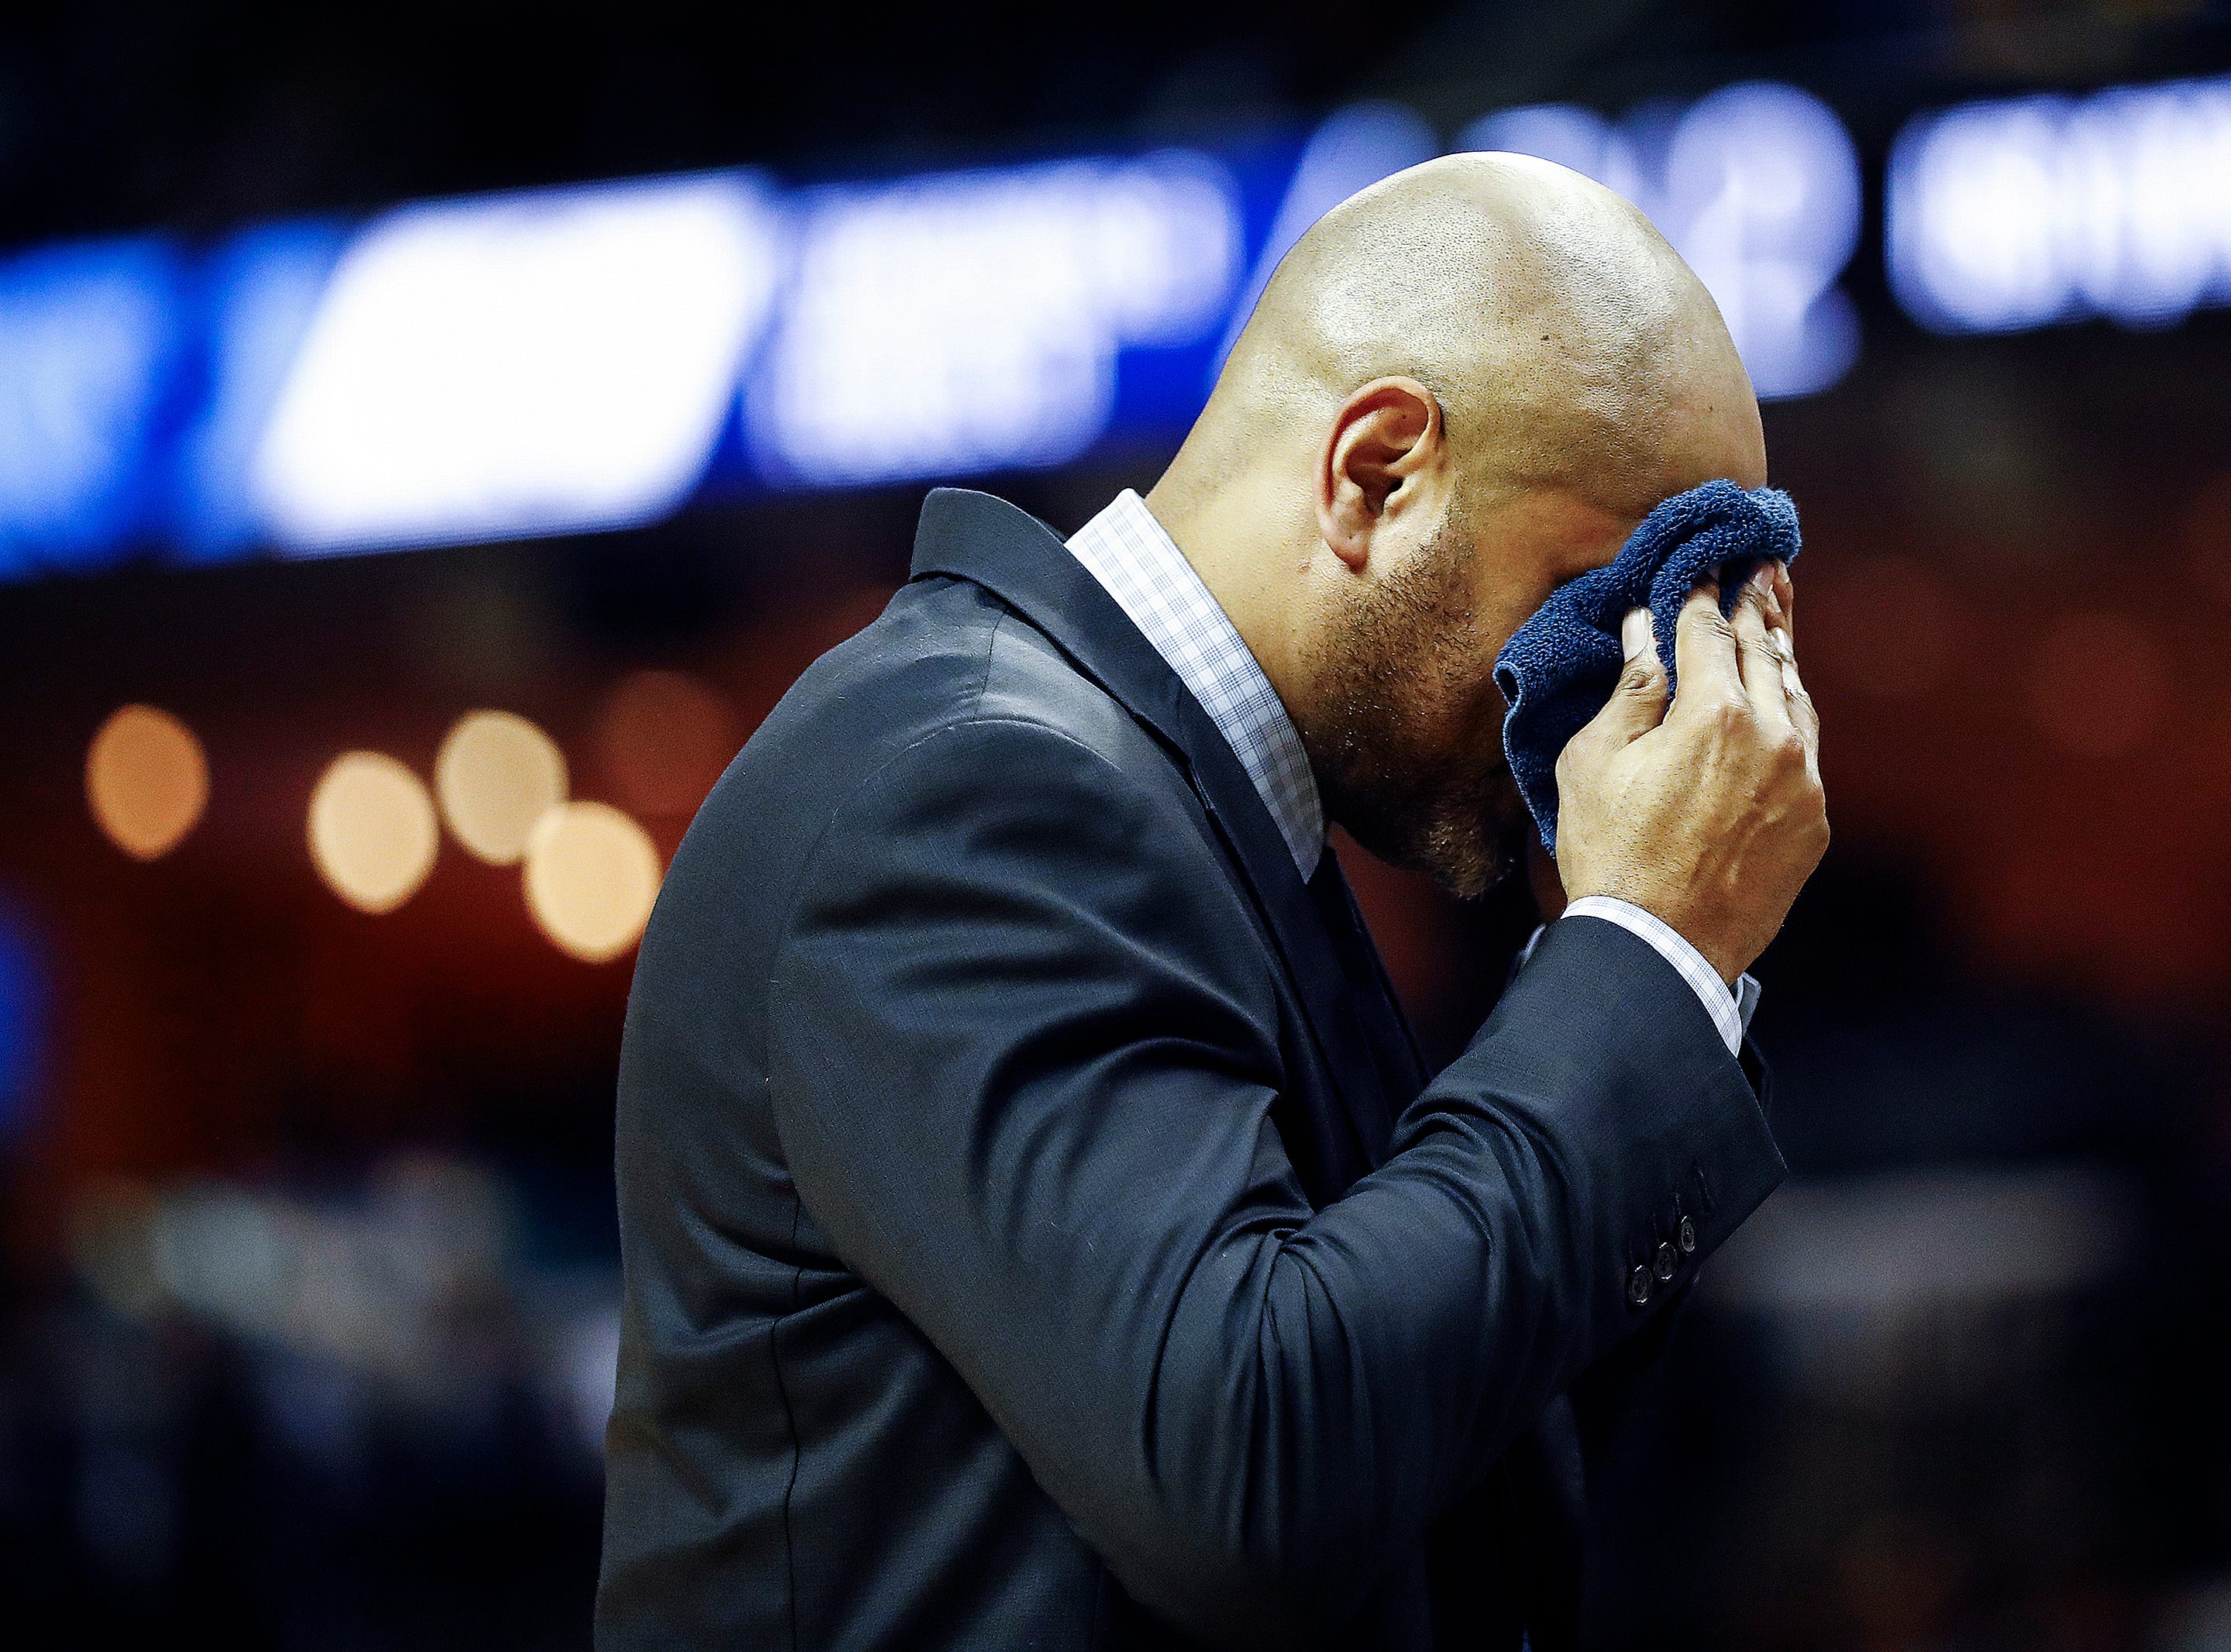 Memphis Grizzlies head coach J.B. Bickerstaff during action against Minnesota Timberwolves during action at the FedExForum in Memphis, Tenn., Tuesday, February 5, 2019.